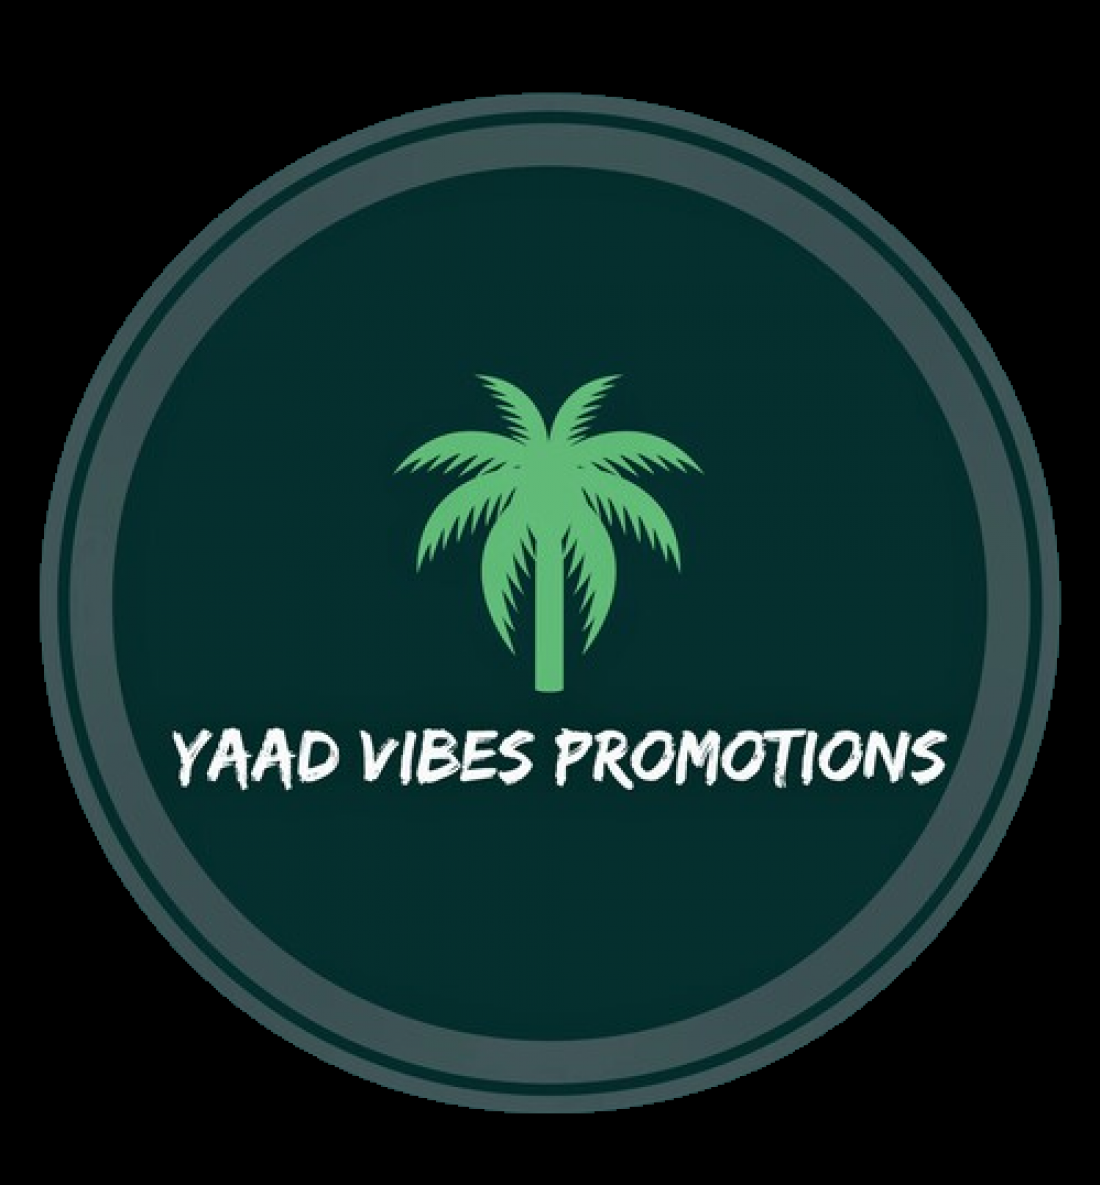 Yaad Vibes Promotions